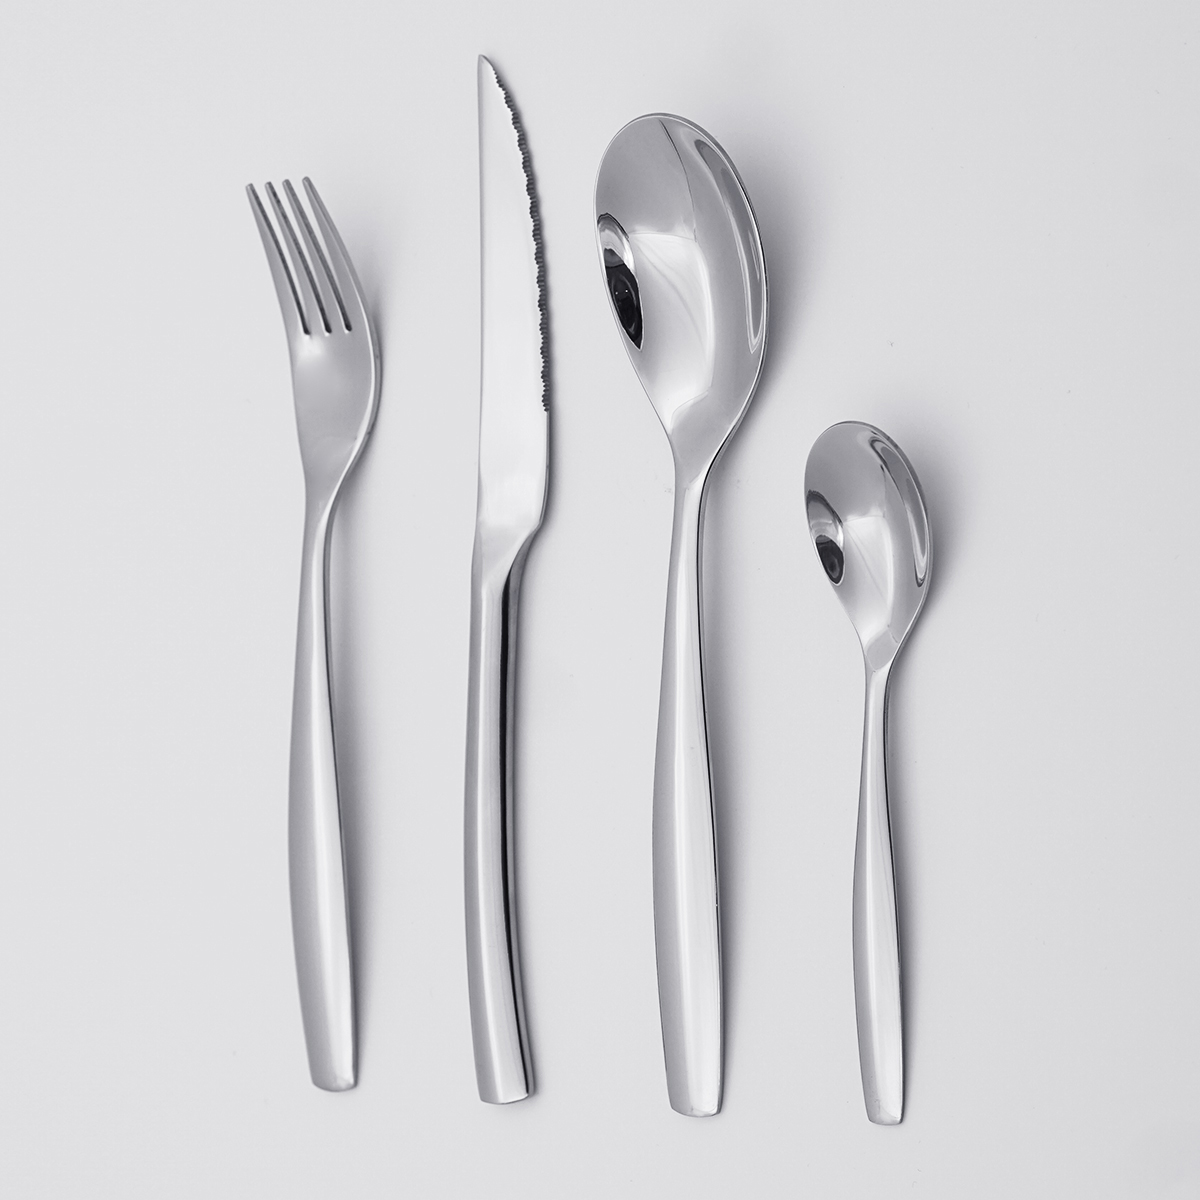 Wholesale High Quality Low MOQ Cheap Price Flatware Set Silverware Stainless Steel Cutlery for Restaurant Hotel